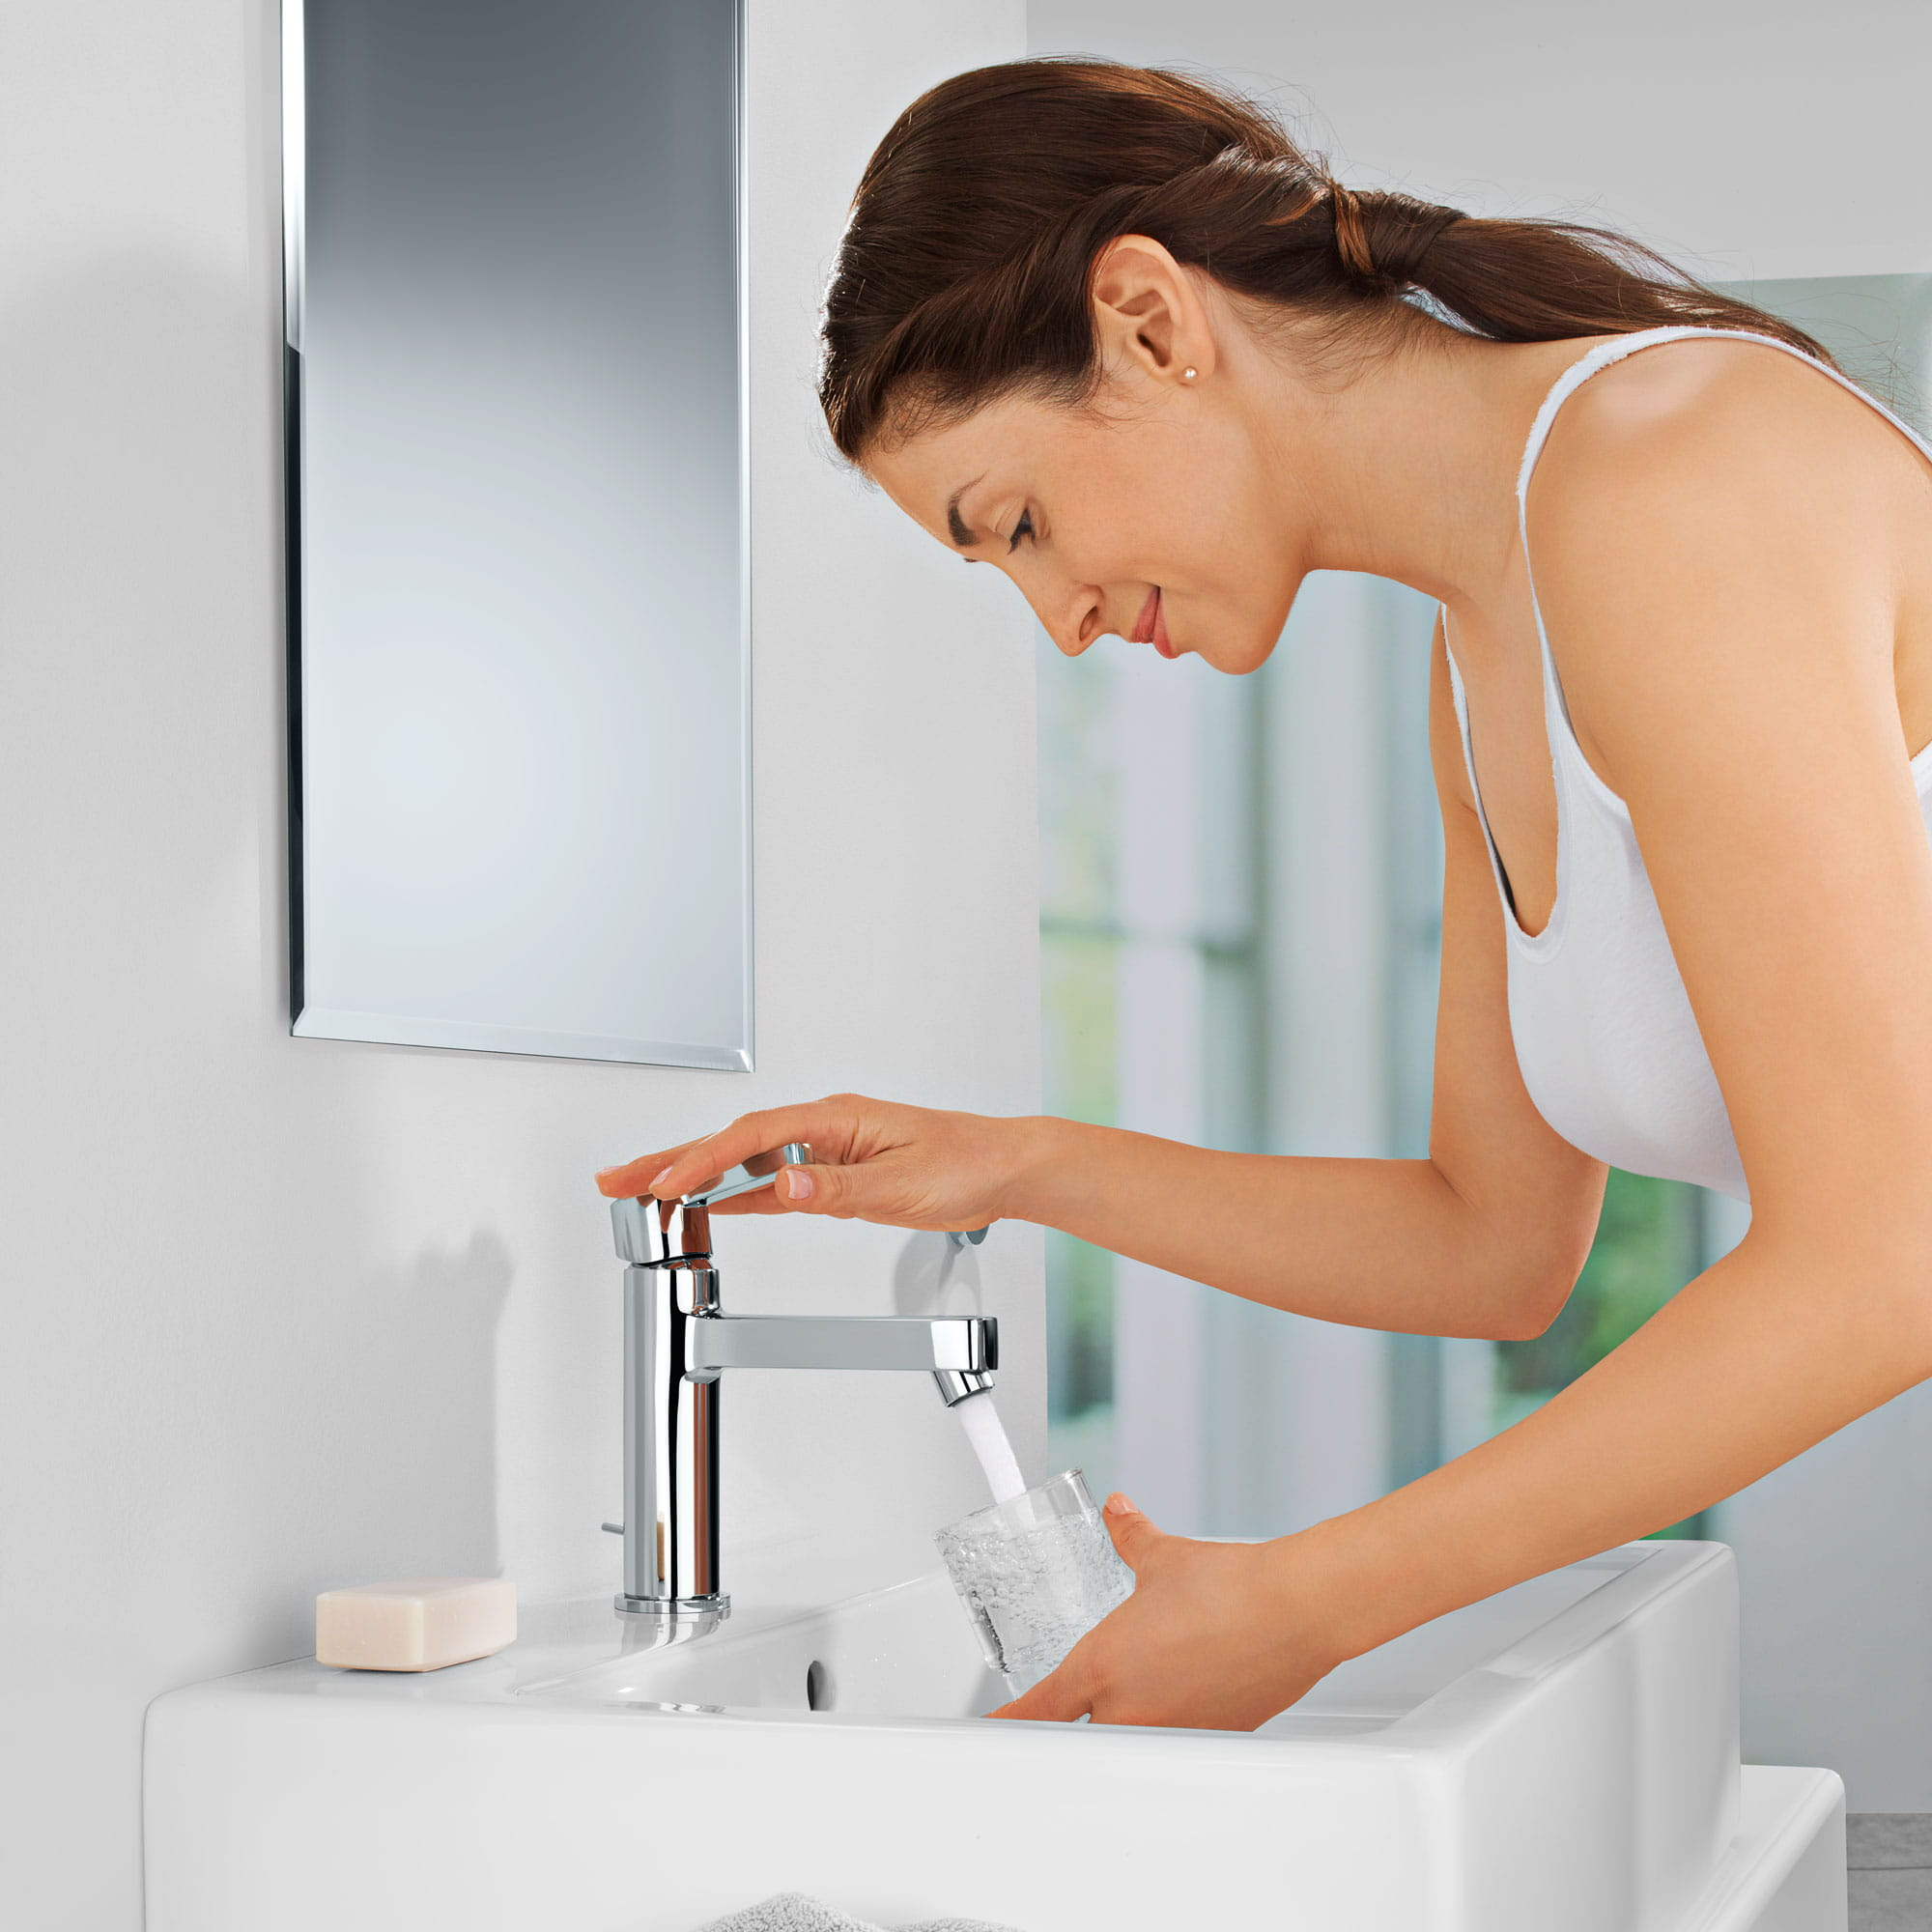 A women filling a glass under a grohe faucet.